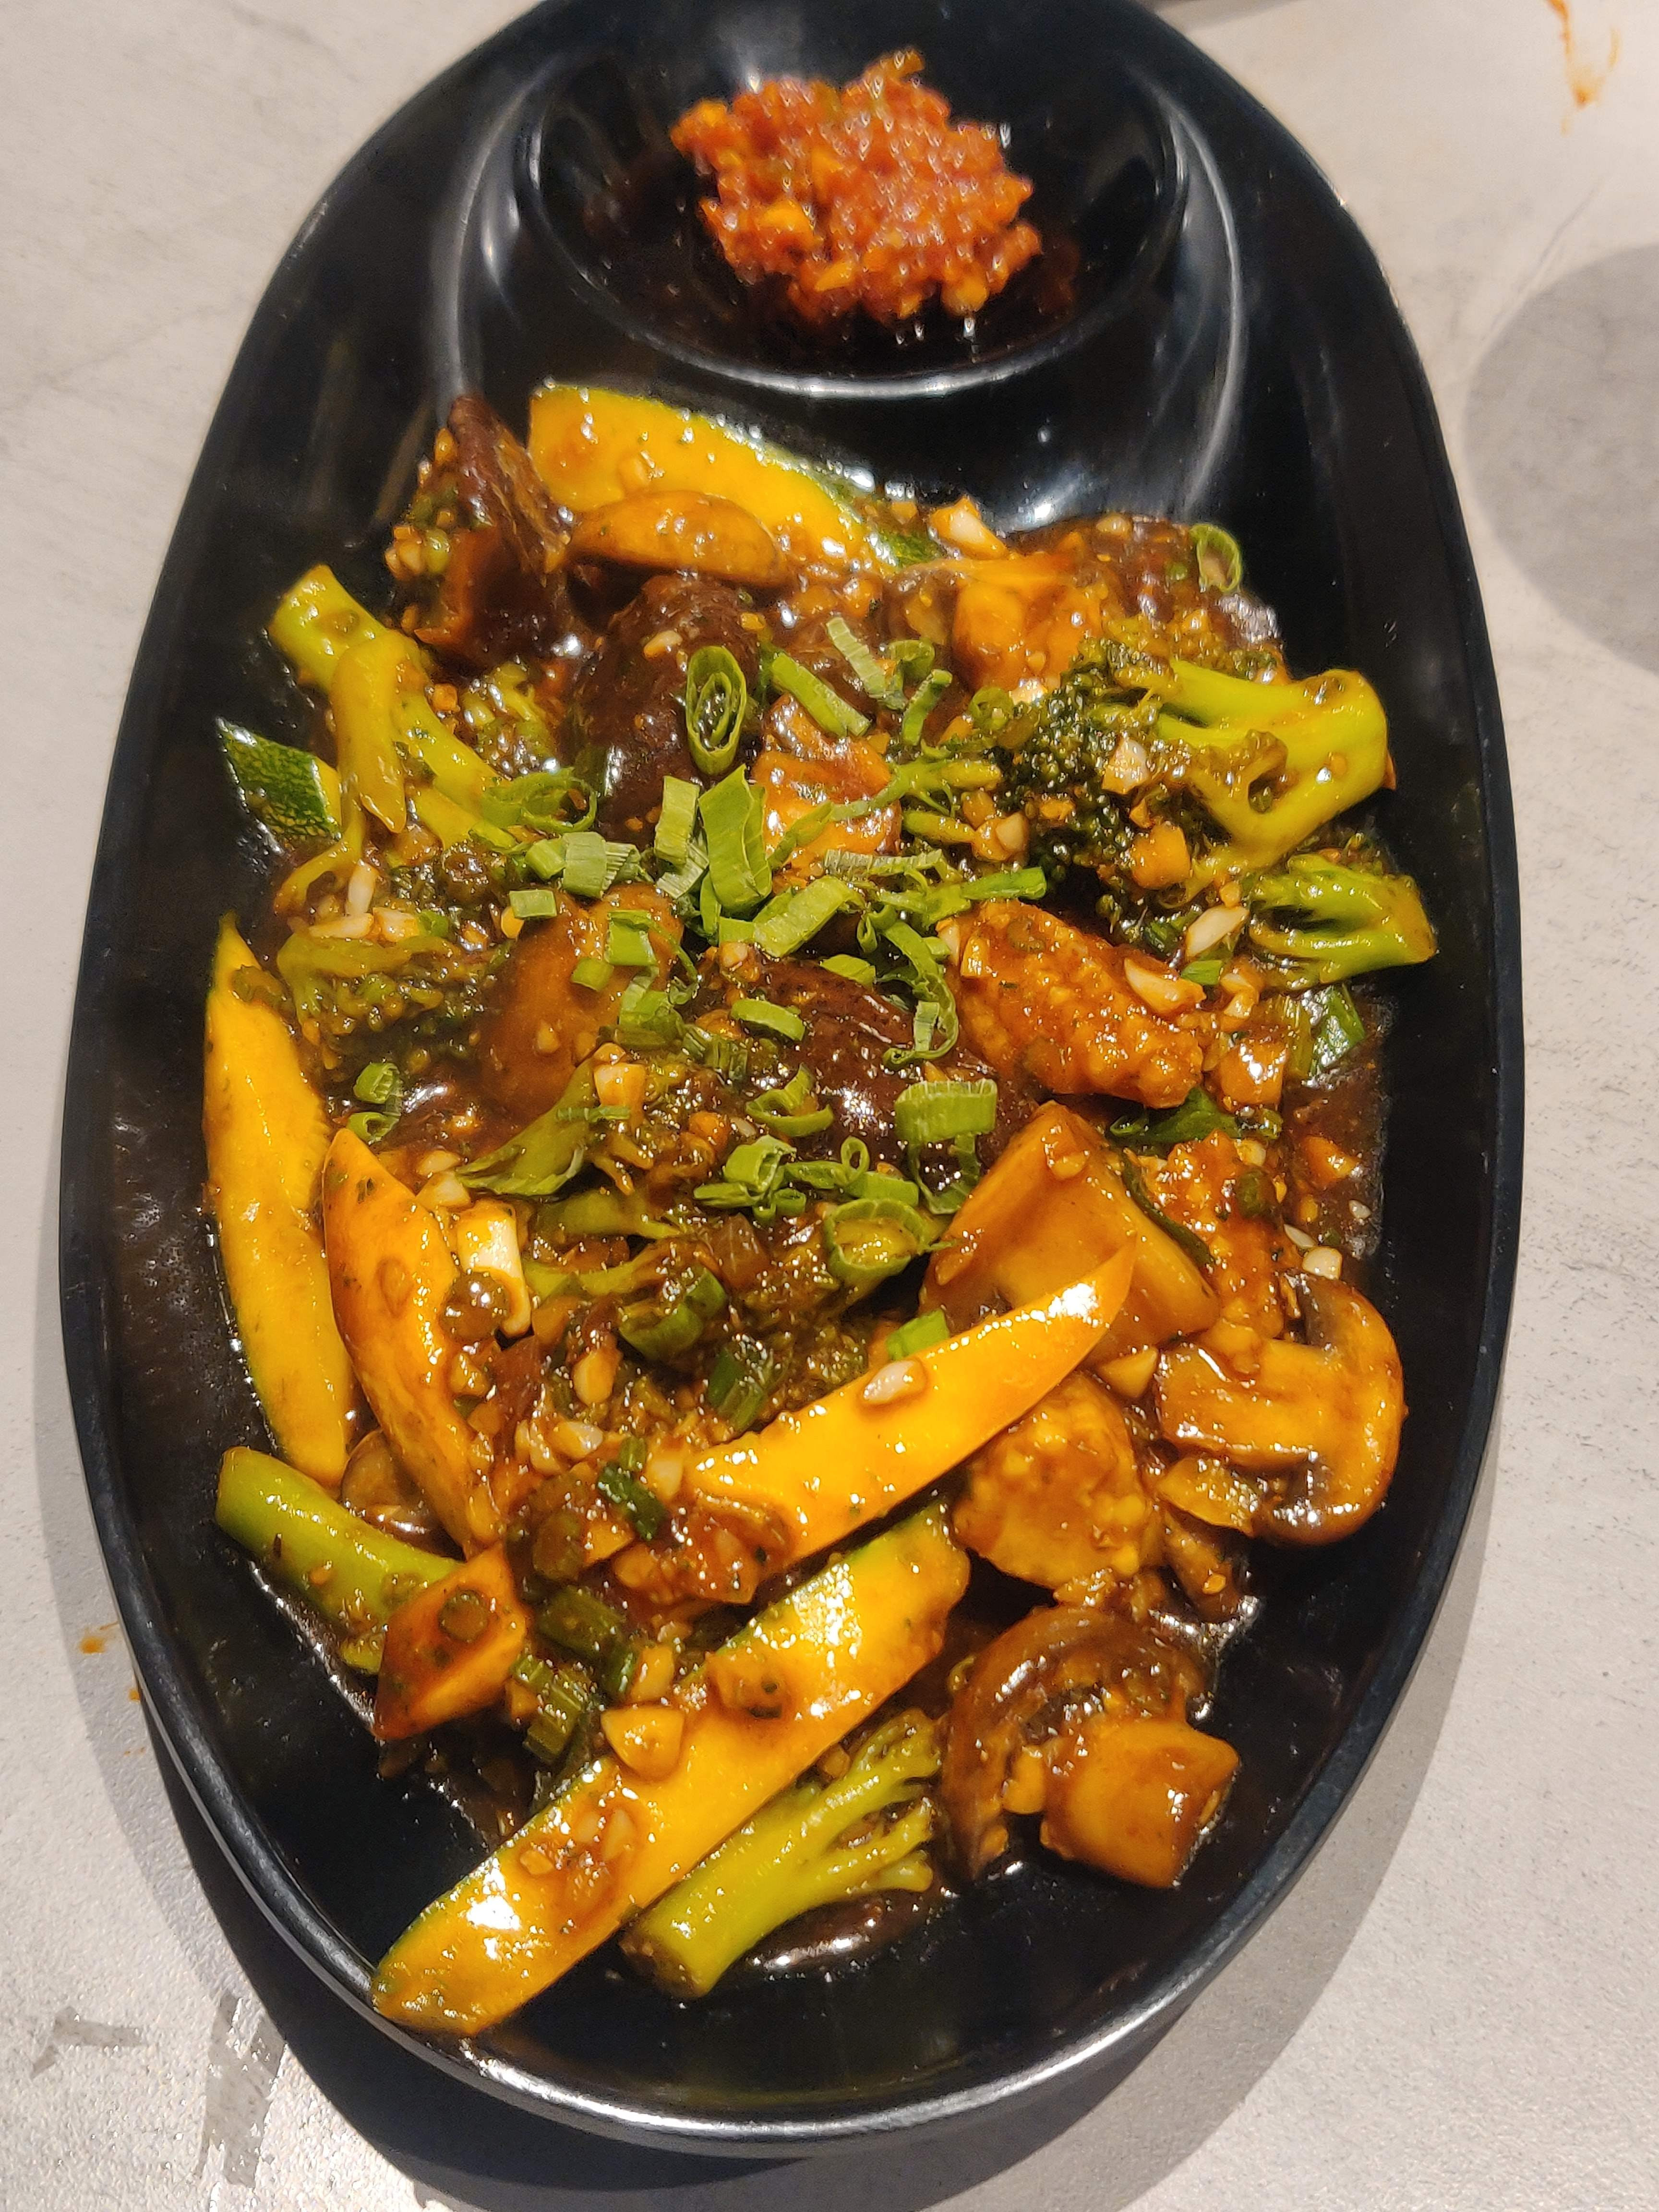 New Place Alert: This Restaurant In Dahisar Is Perfect For All Family Get-Togethers!